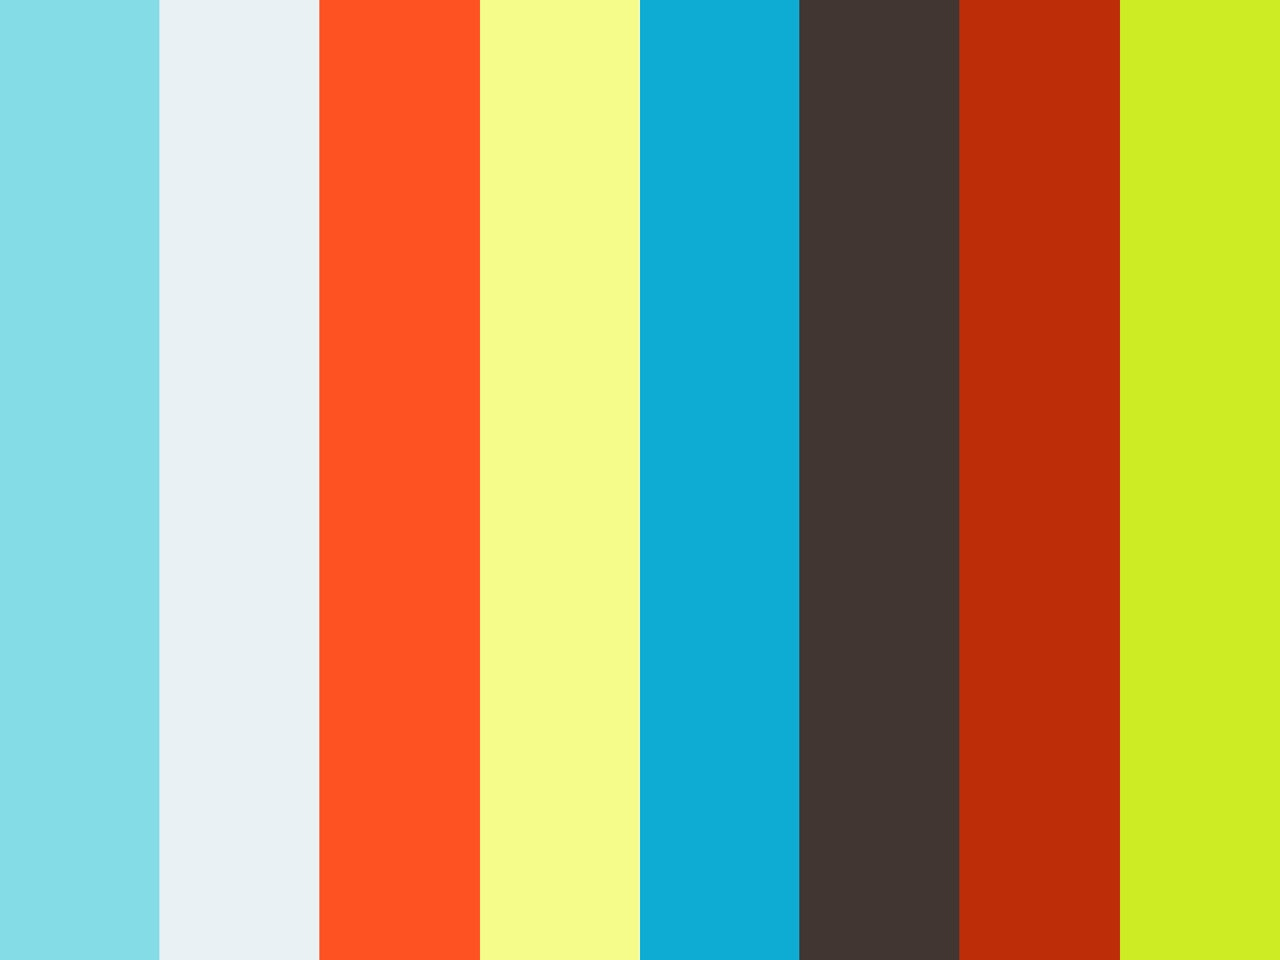 Fraction To Percentage Conversion Chart: How to convert fractions into decimals on a Casio calculator on Vimeo,Chart